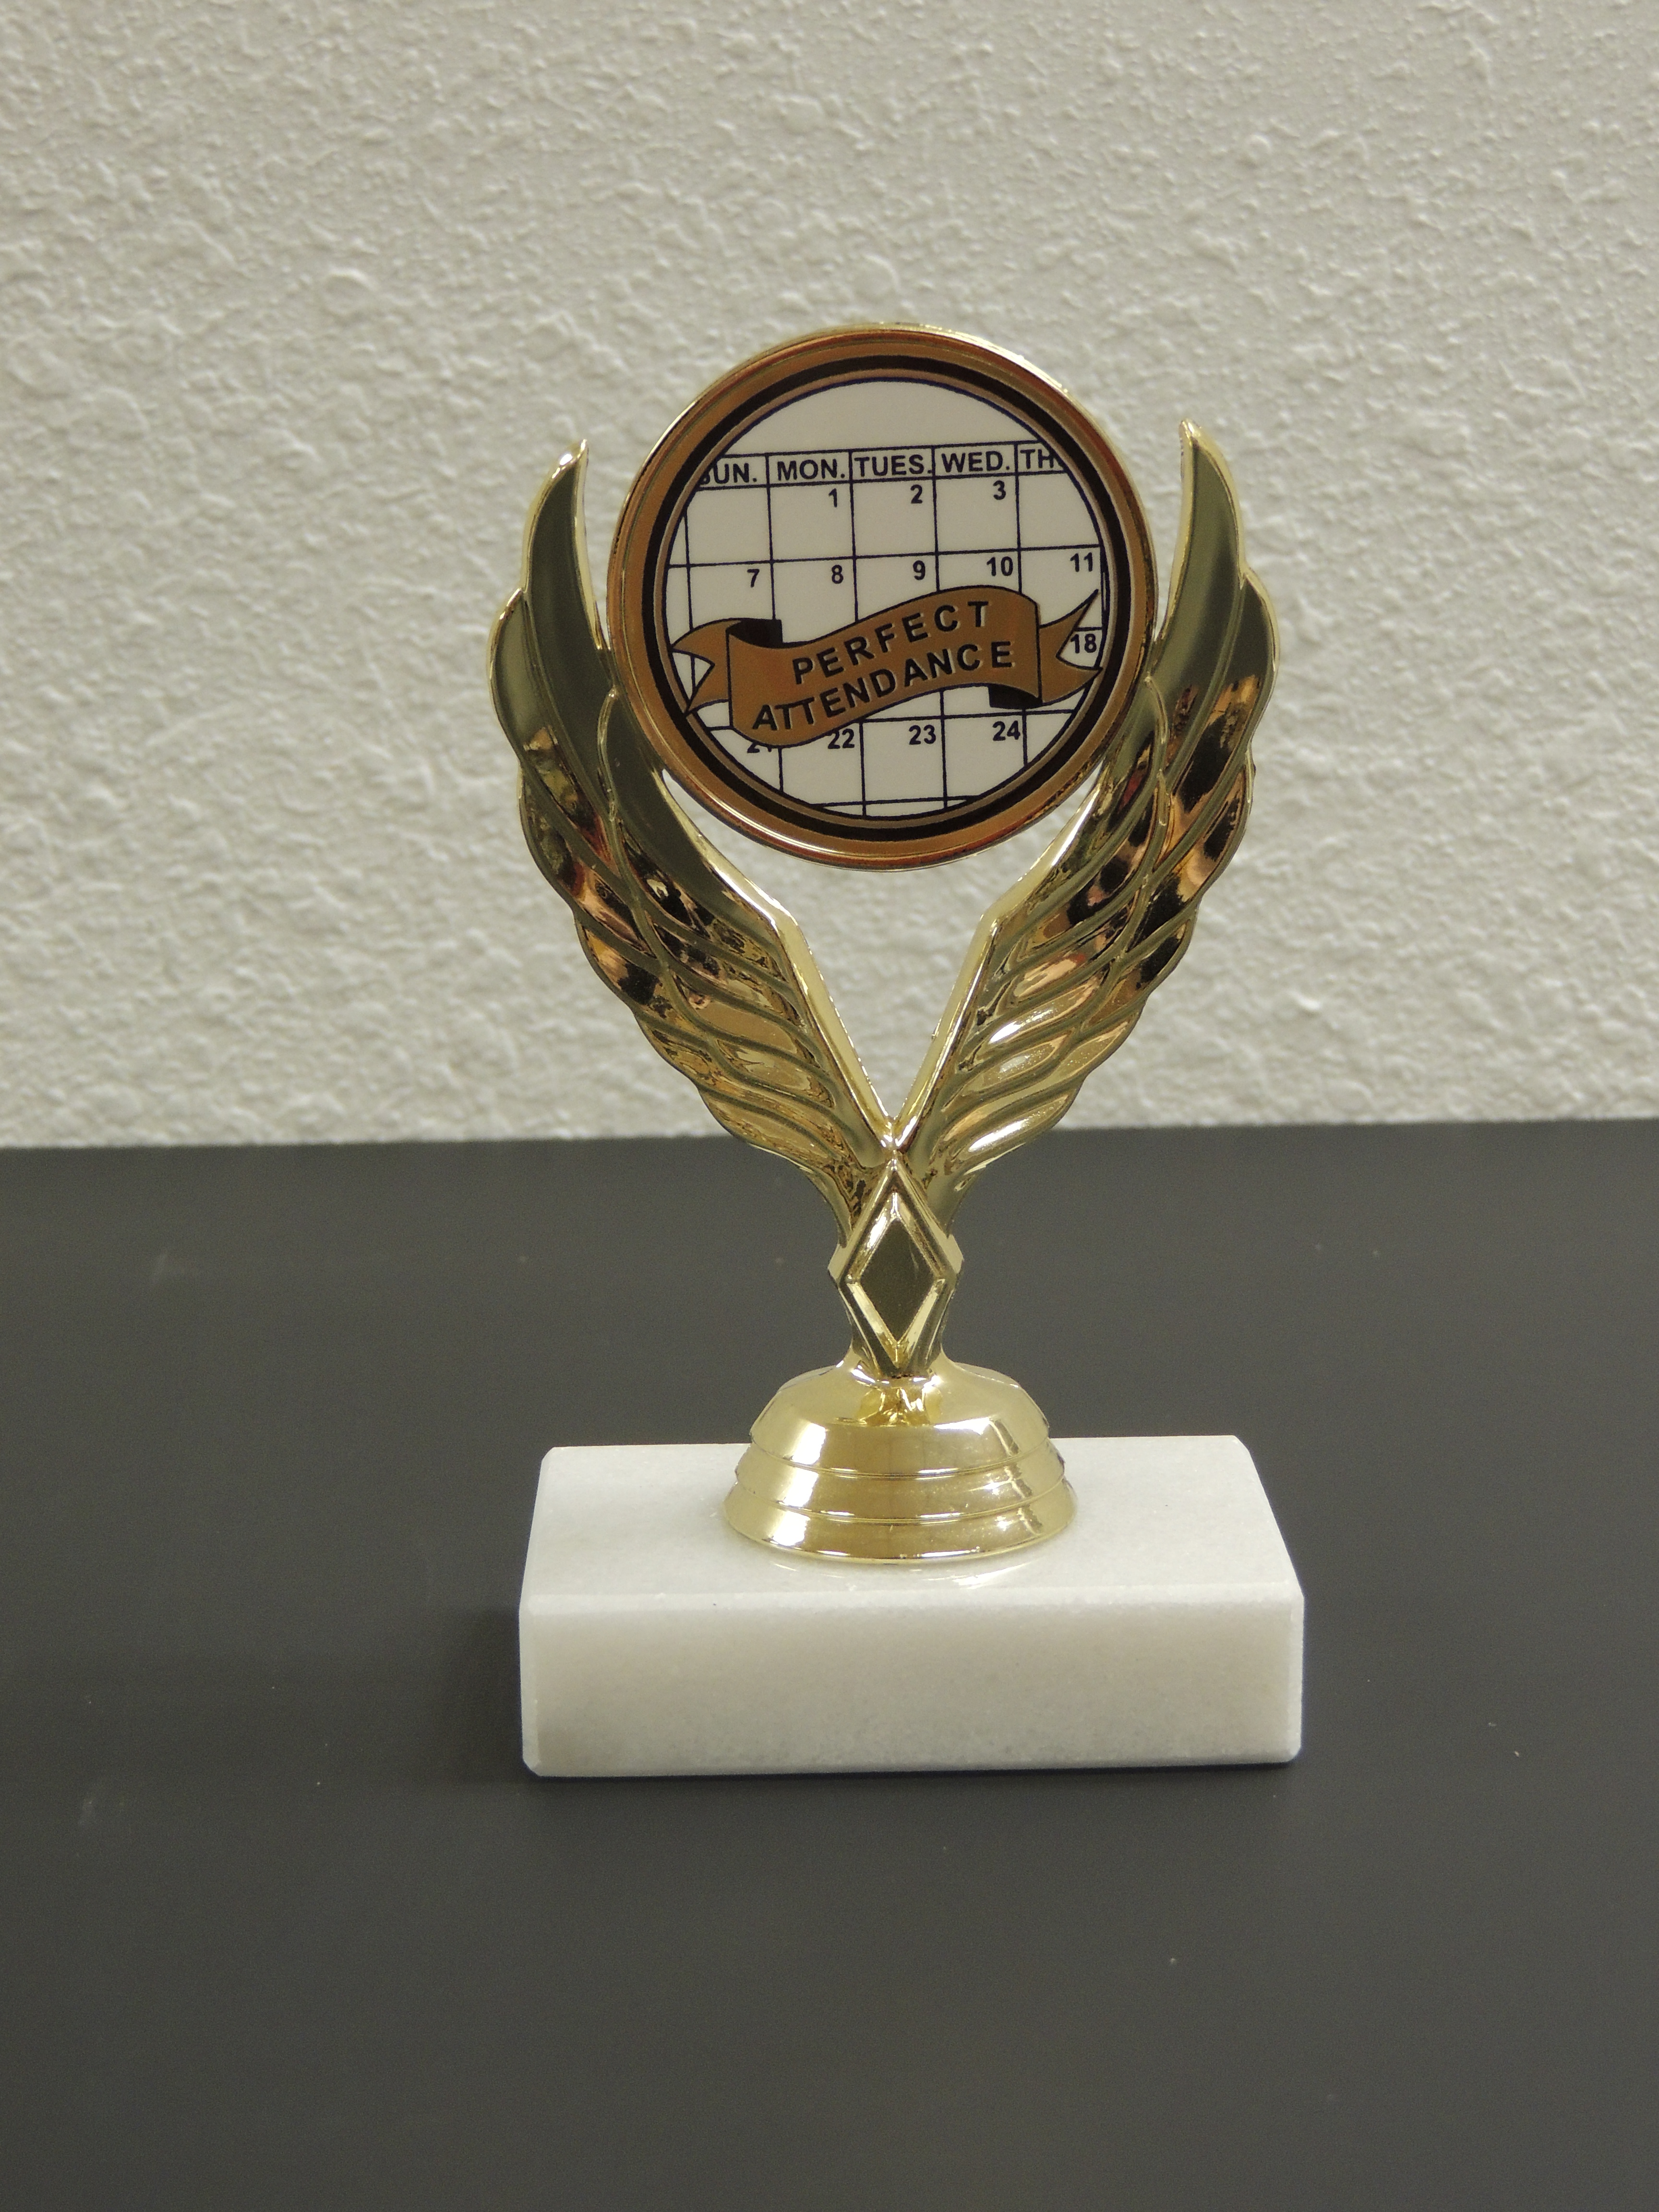 Perfect Attendance Trophy